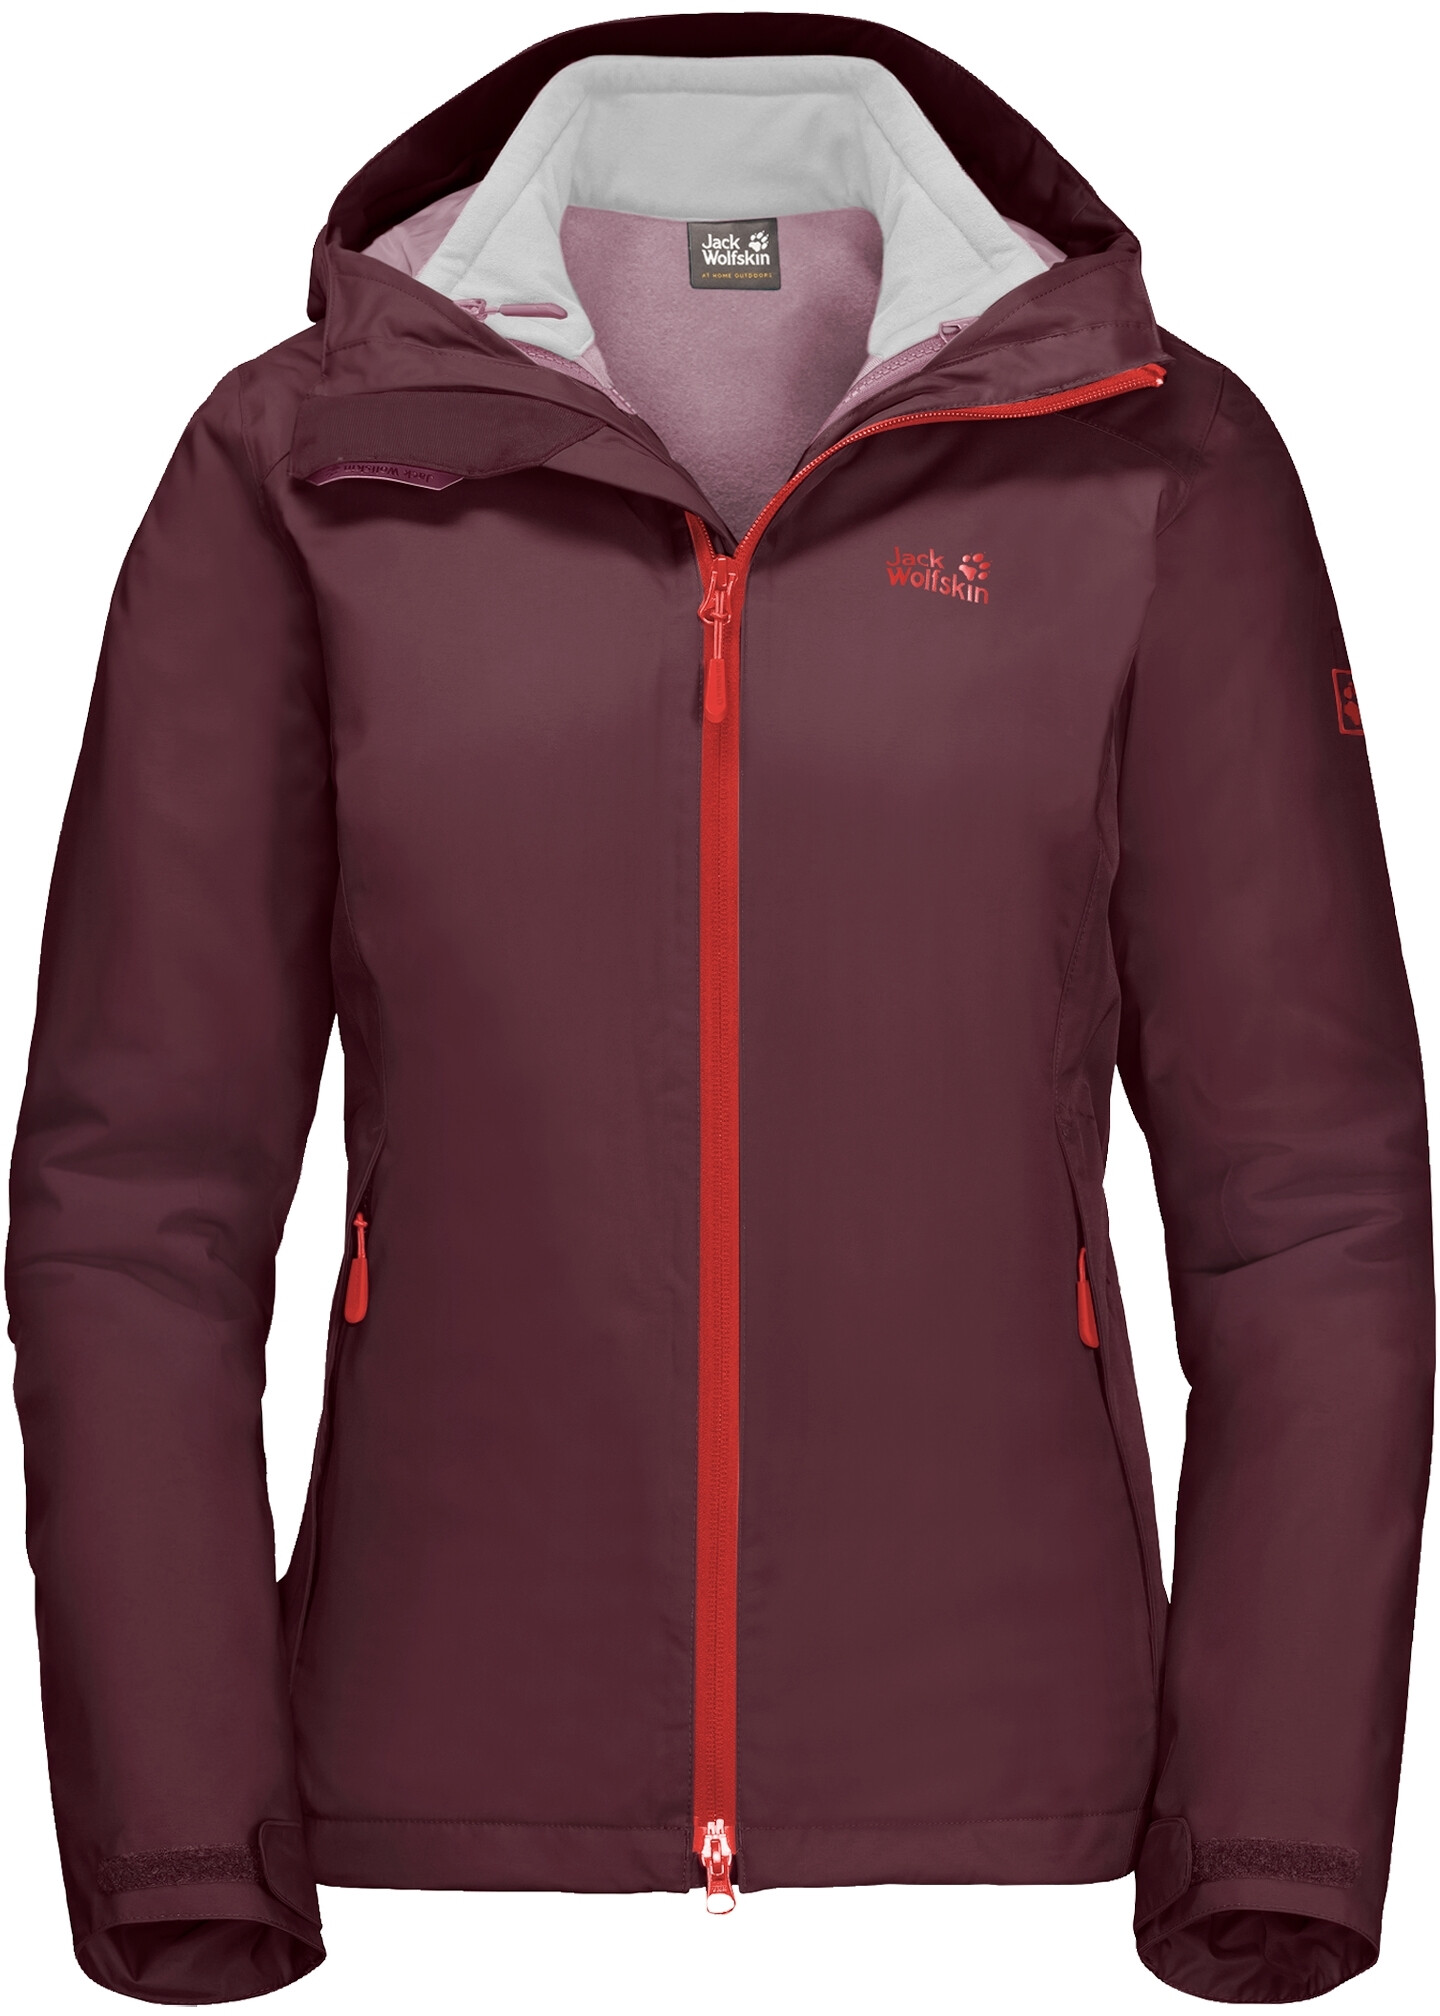 sale retailer e10c3 ce3ab Jack Wolfskin Gotland 3in1 Jacke Damen fall red